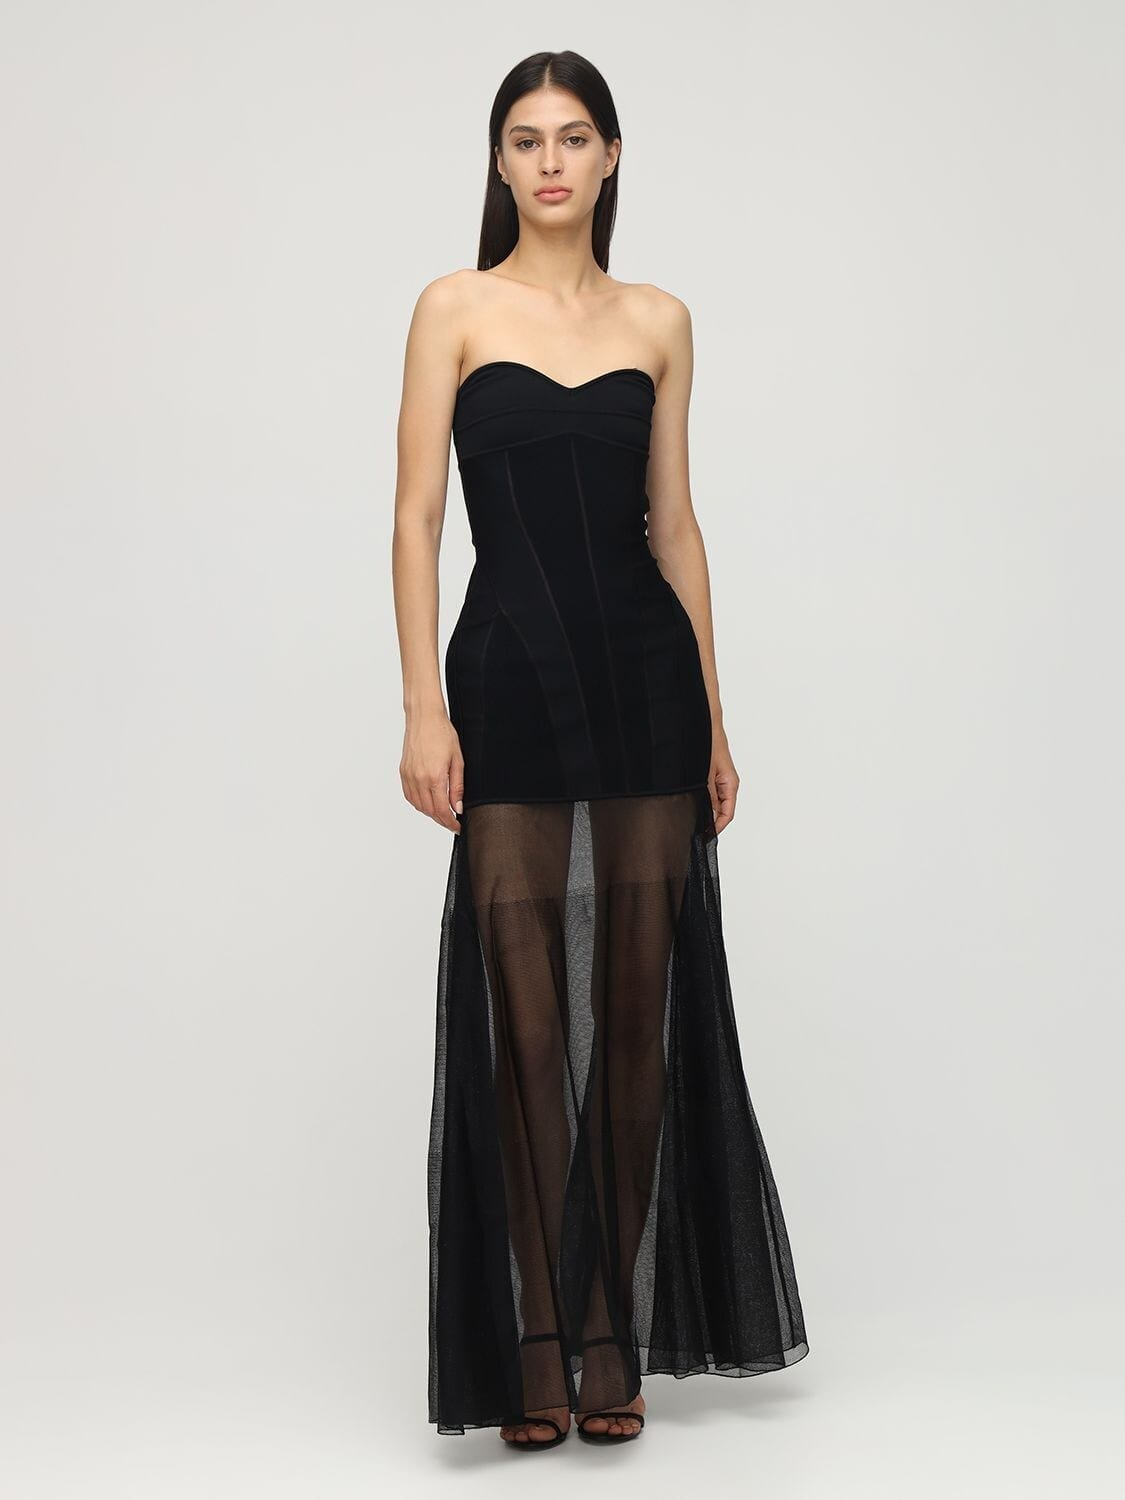 MUGLER Strapless Knit Sheer Long Dress